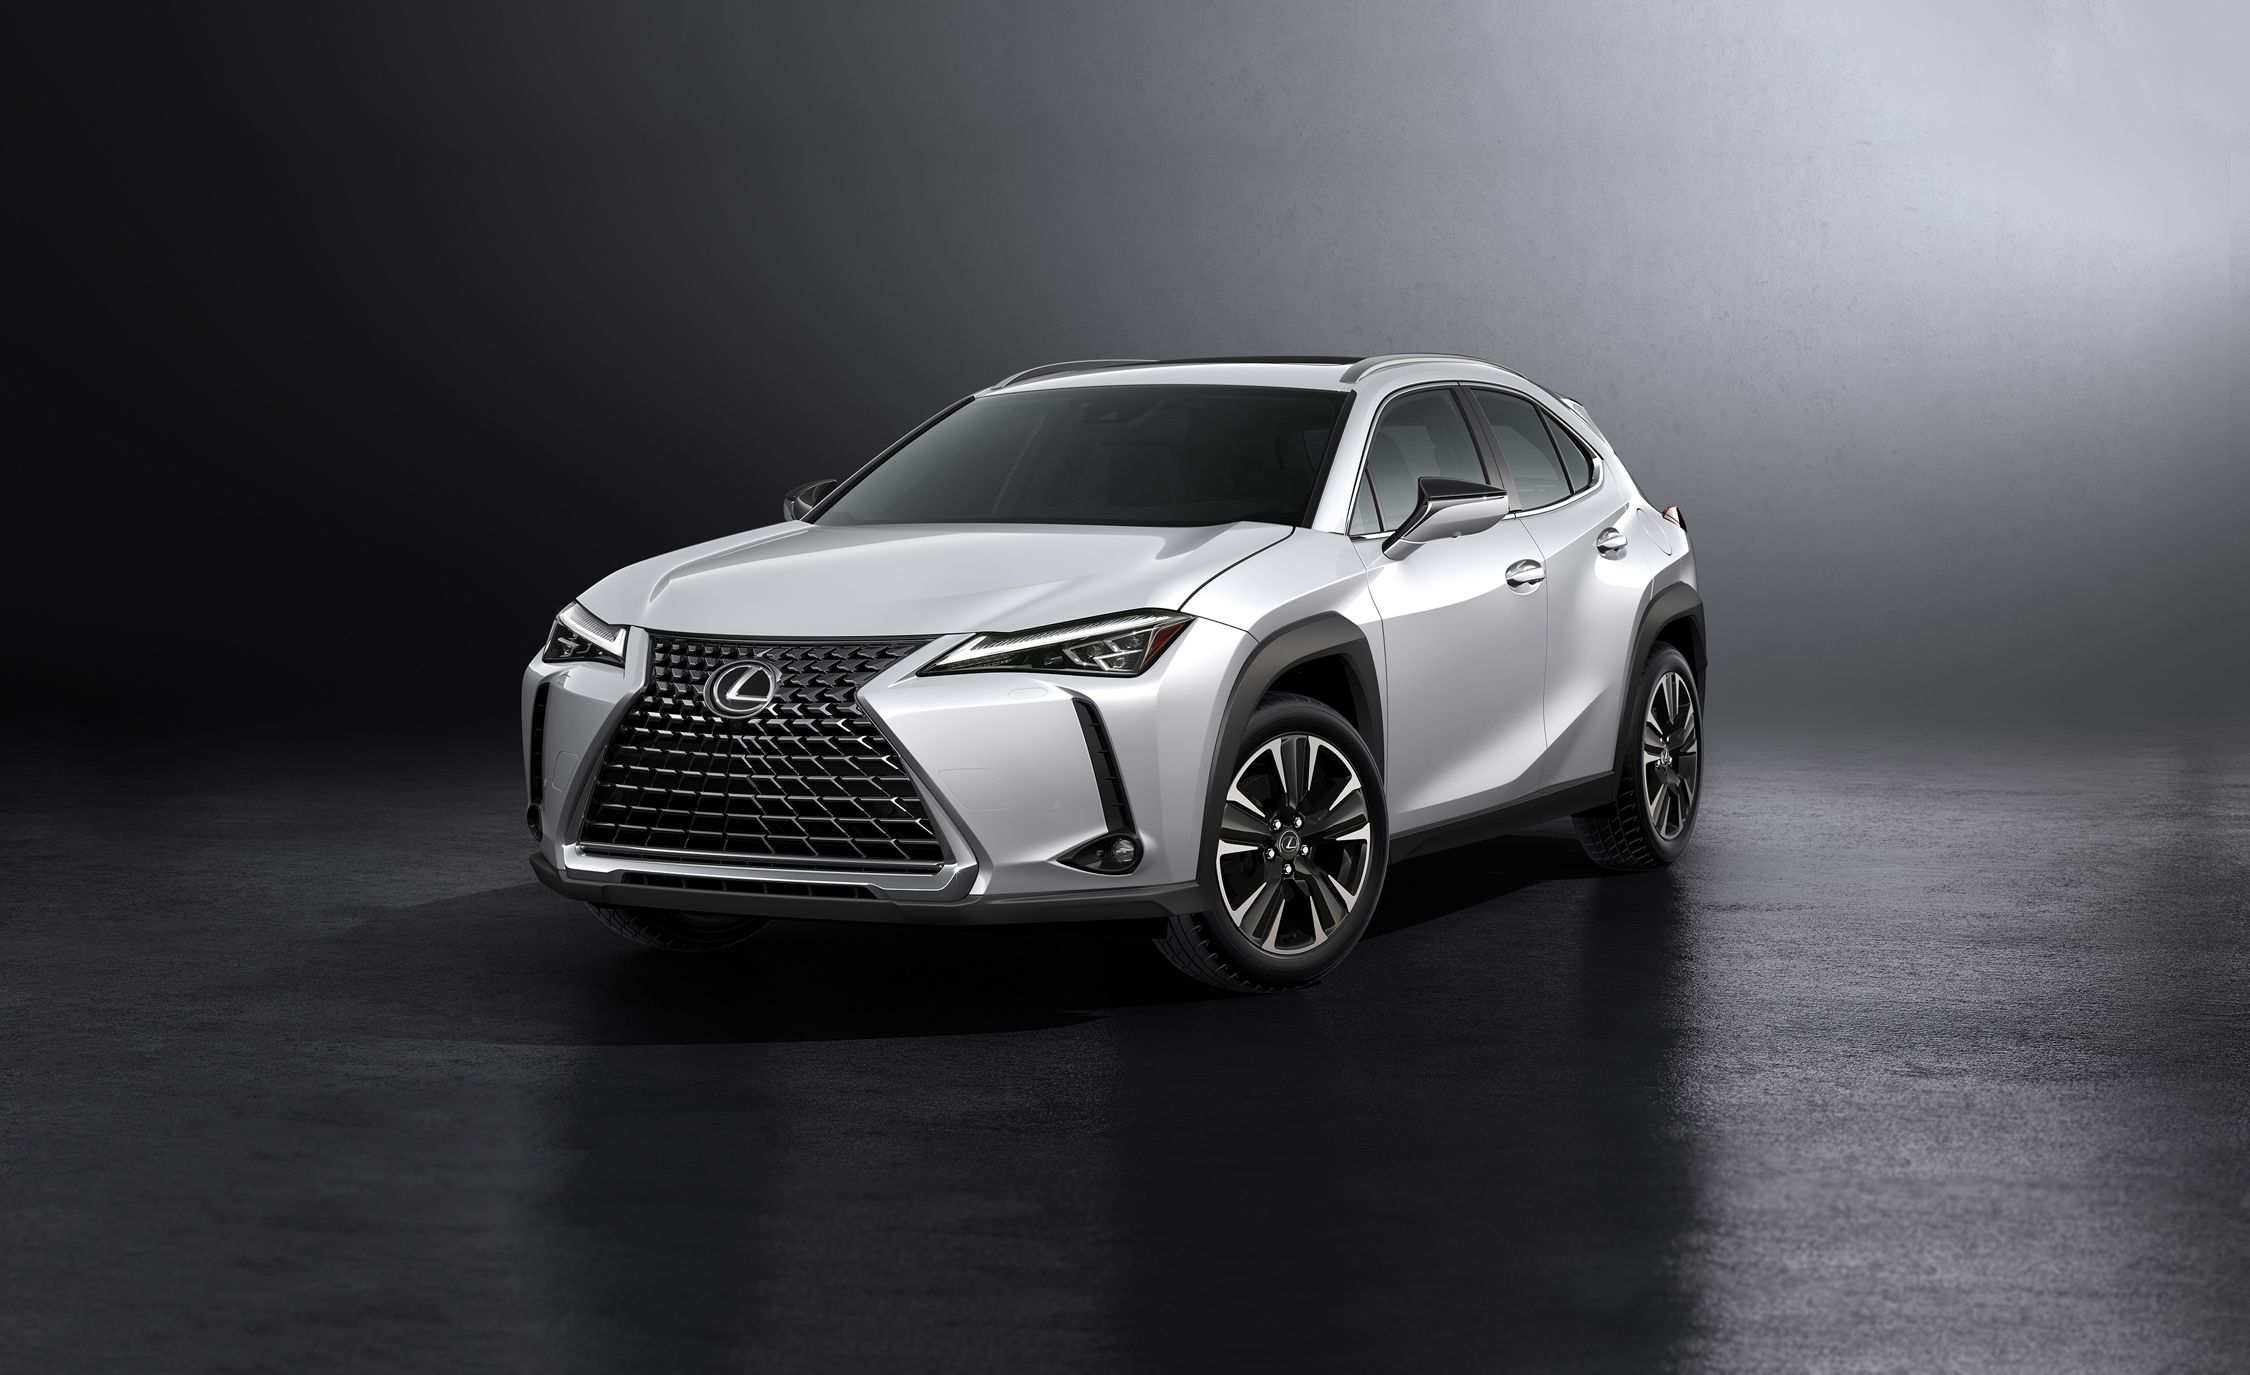 96 All New New Jeepeta Lexus 2019 Redesign Price And Review New Review for New Jeepeta Lexus 2019 Redesign Price And Review